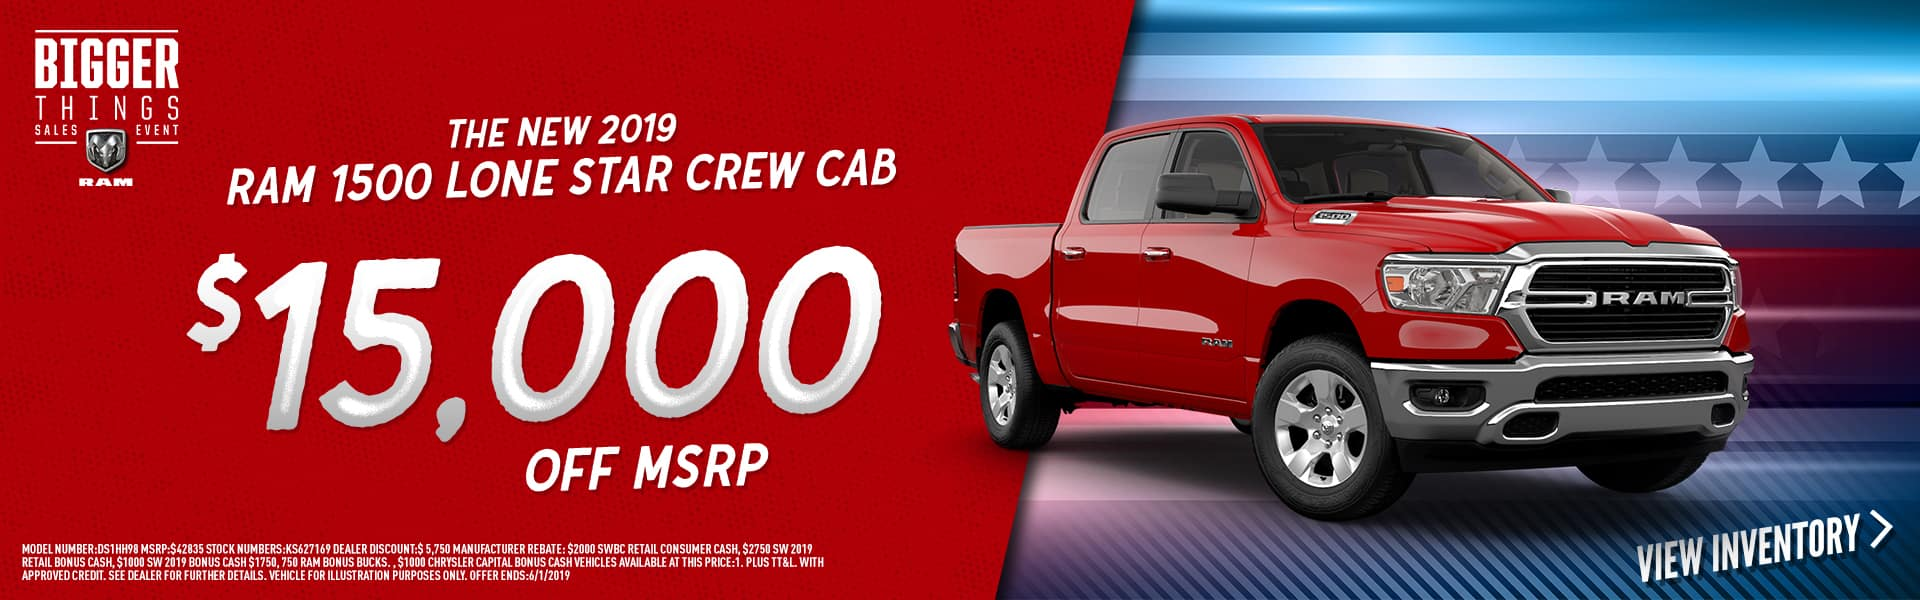 lease-2019-ram-1500-lone-star-crew-cab-15000-off-msrp-beaumont